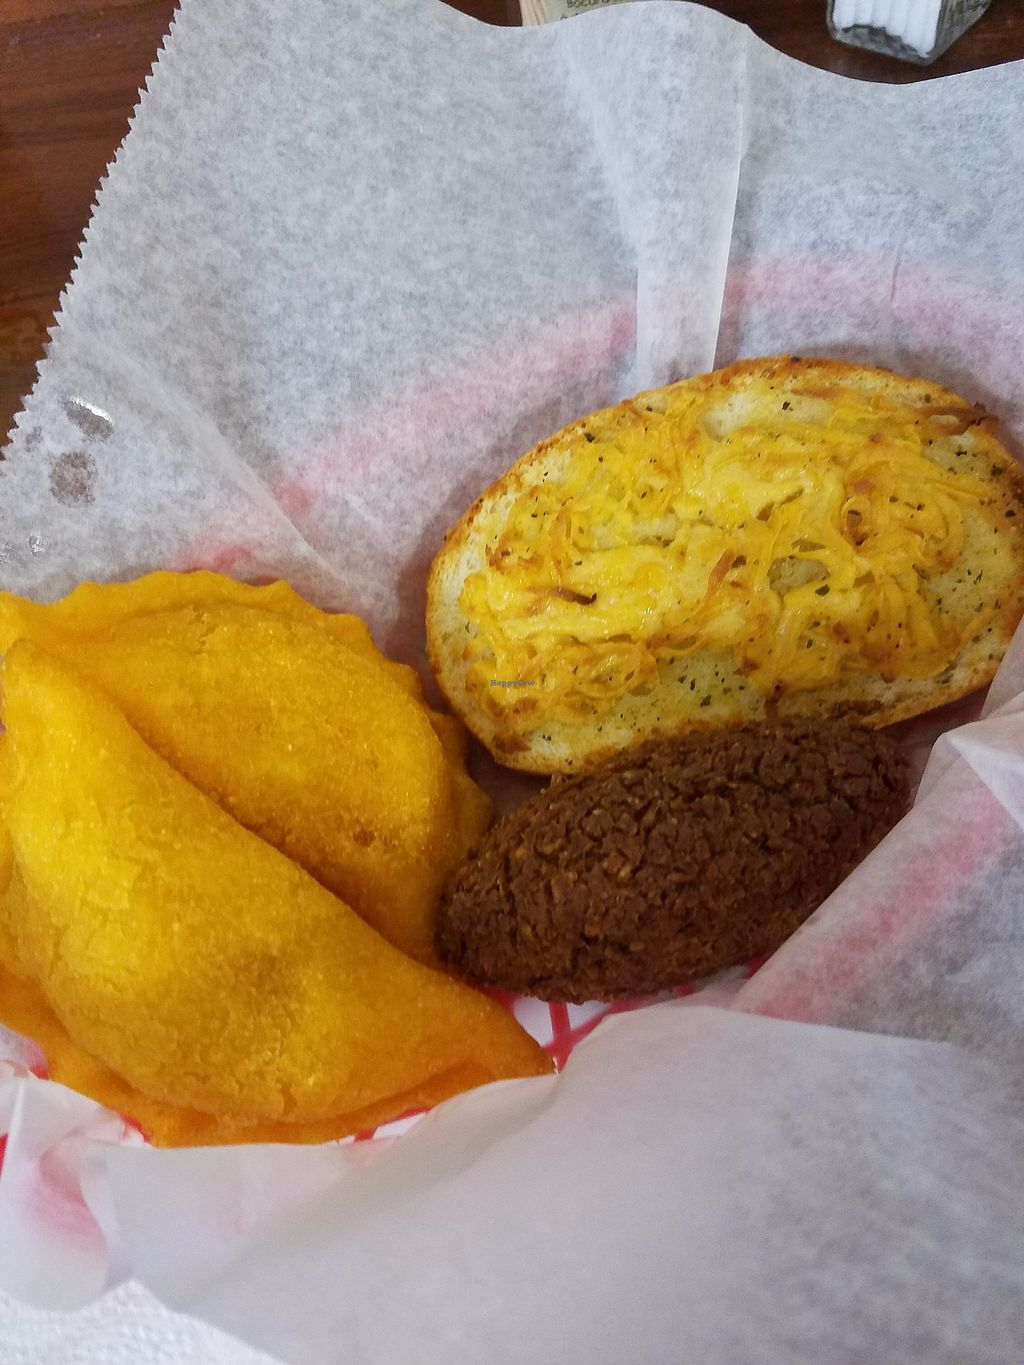 """Photo of The Happy Vegan Bakers  by <a href=""""/members/profile/Consciouschink"""">Consciouschink</a> <br/>Vegan Colombian empanadas, Vegan Kibbehs & Vegan Texas Toast w/ cheeze <br/> November 13, 2017  - <a href='/contact/abuse/image/98276/325373'>Report</a>"""